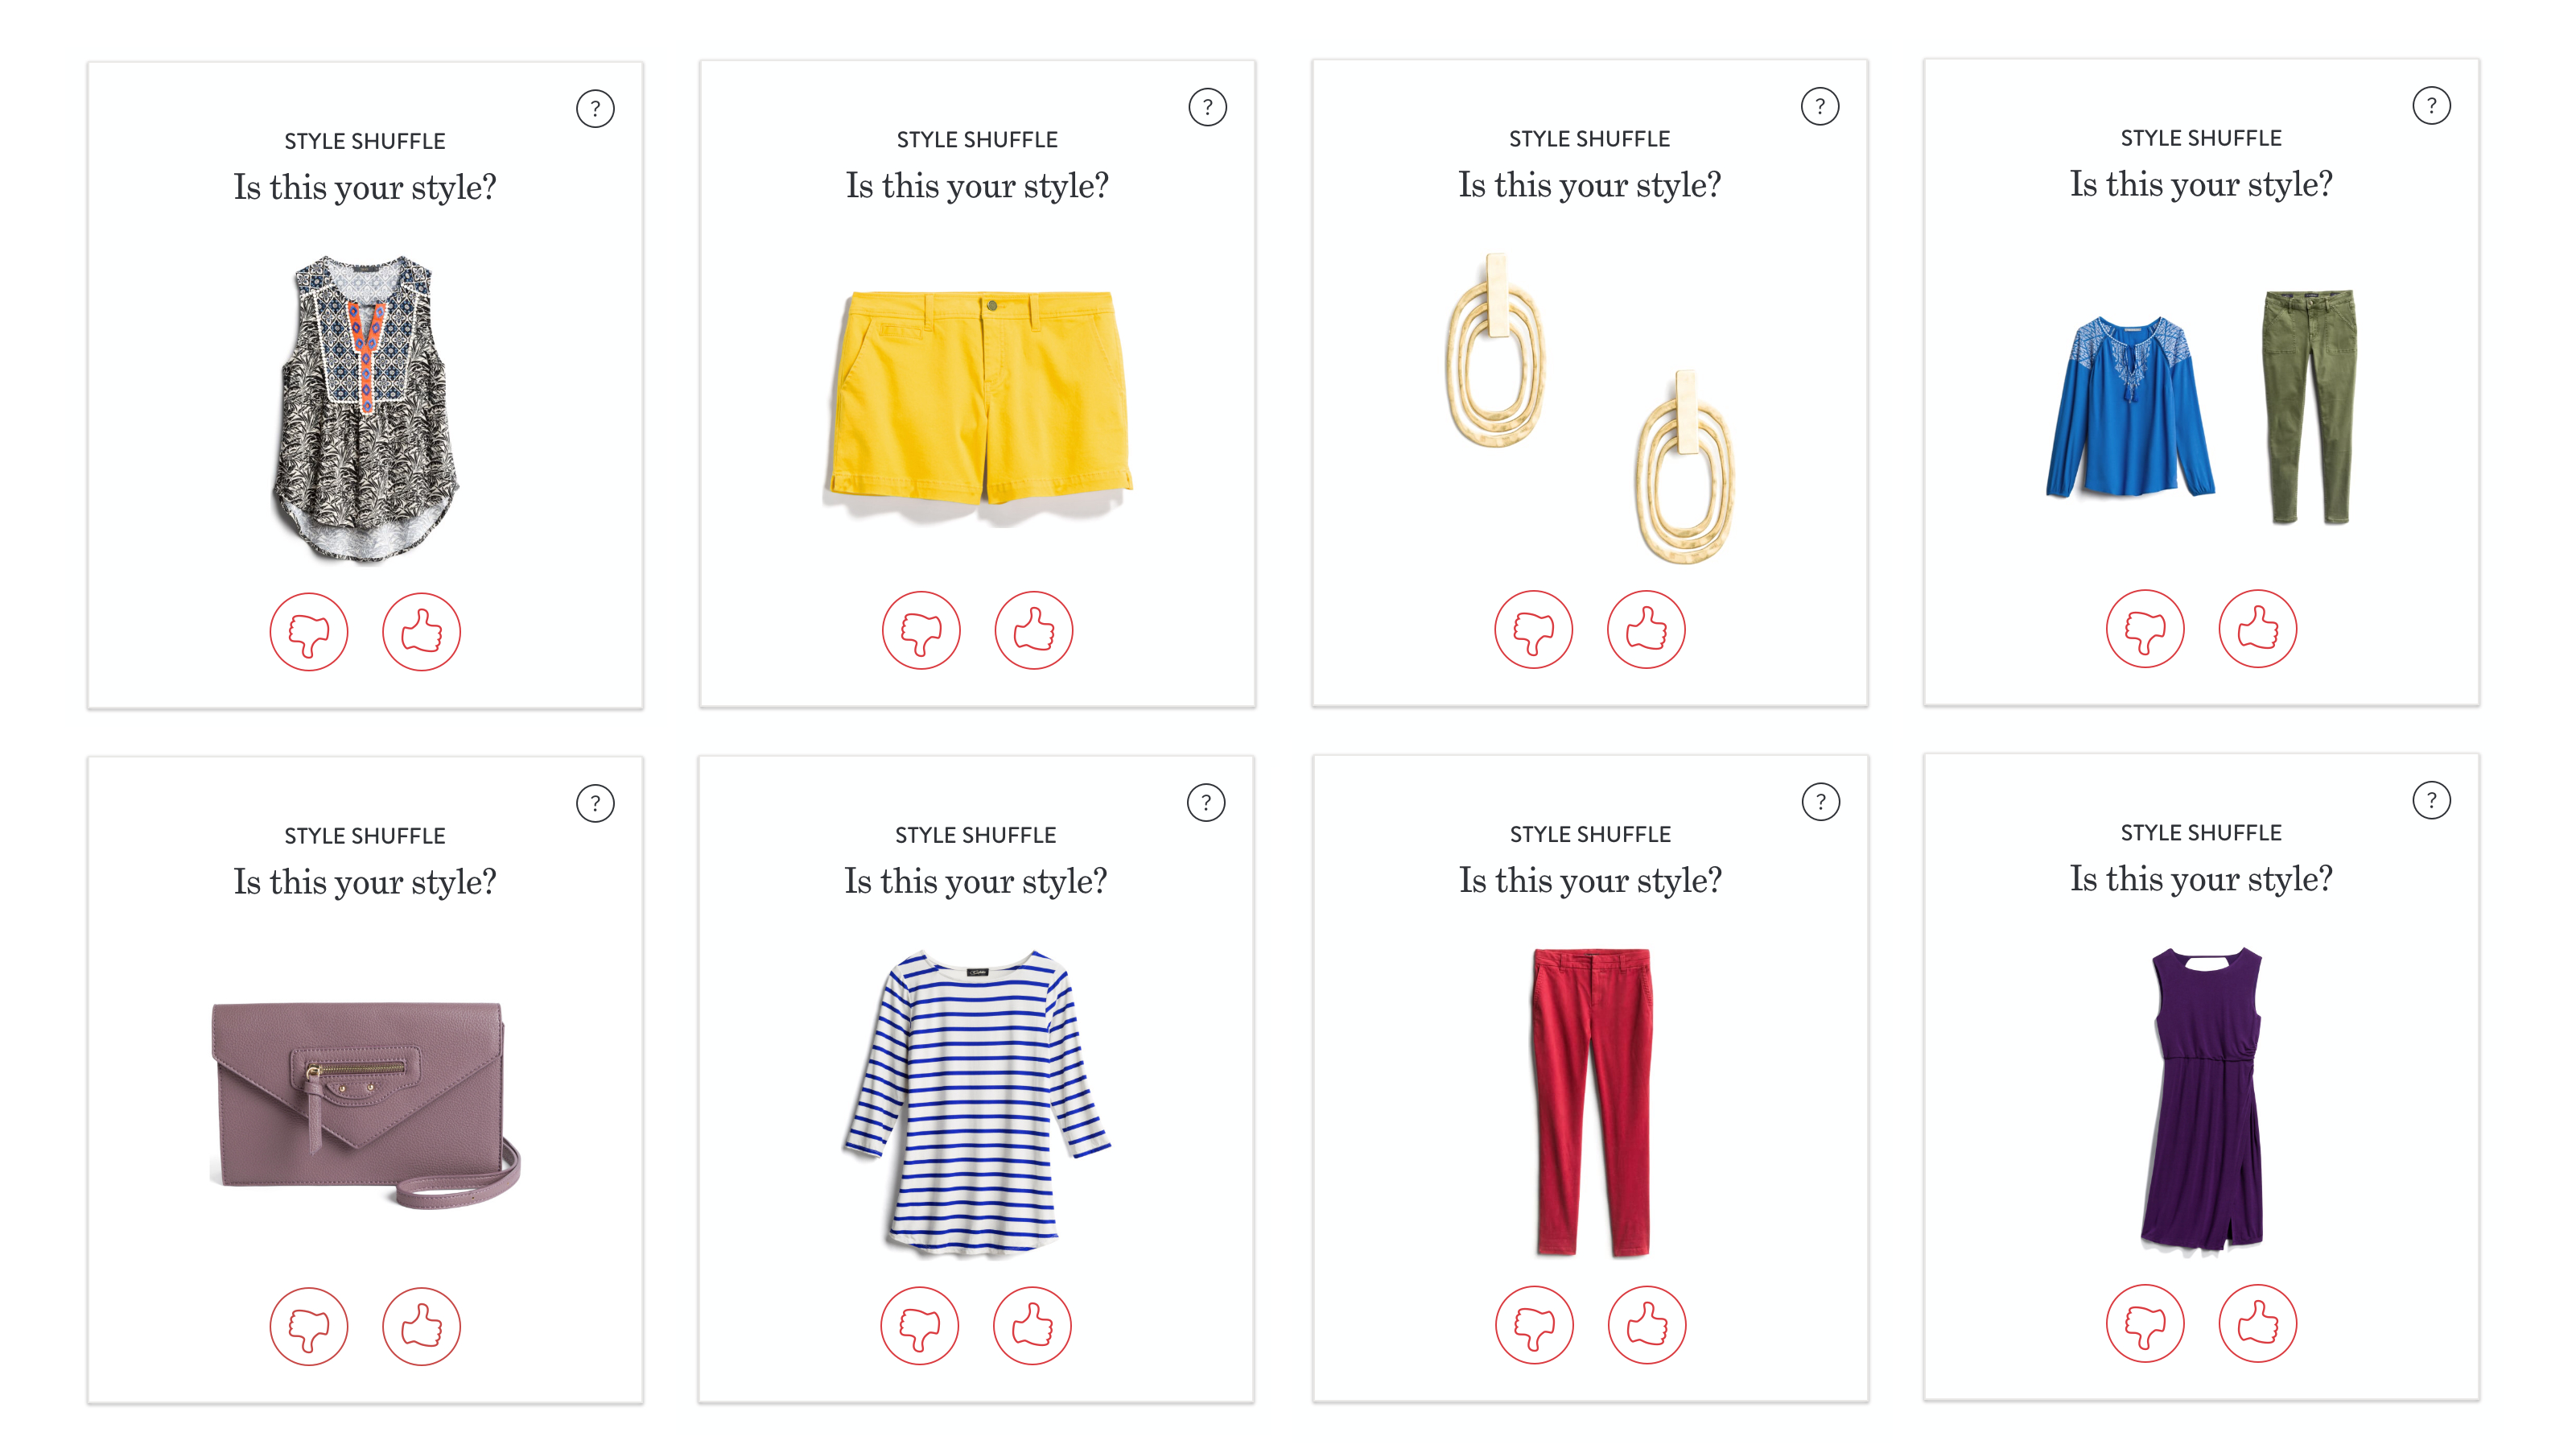 Examples of the Stitch Fix Style Shuffle Tinder for clothes game